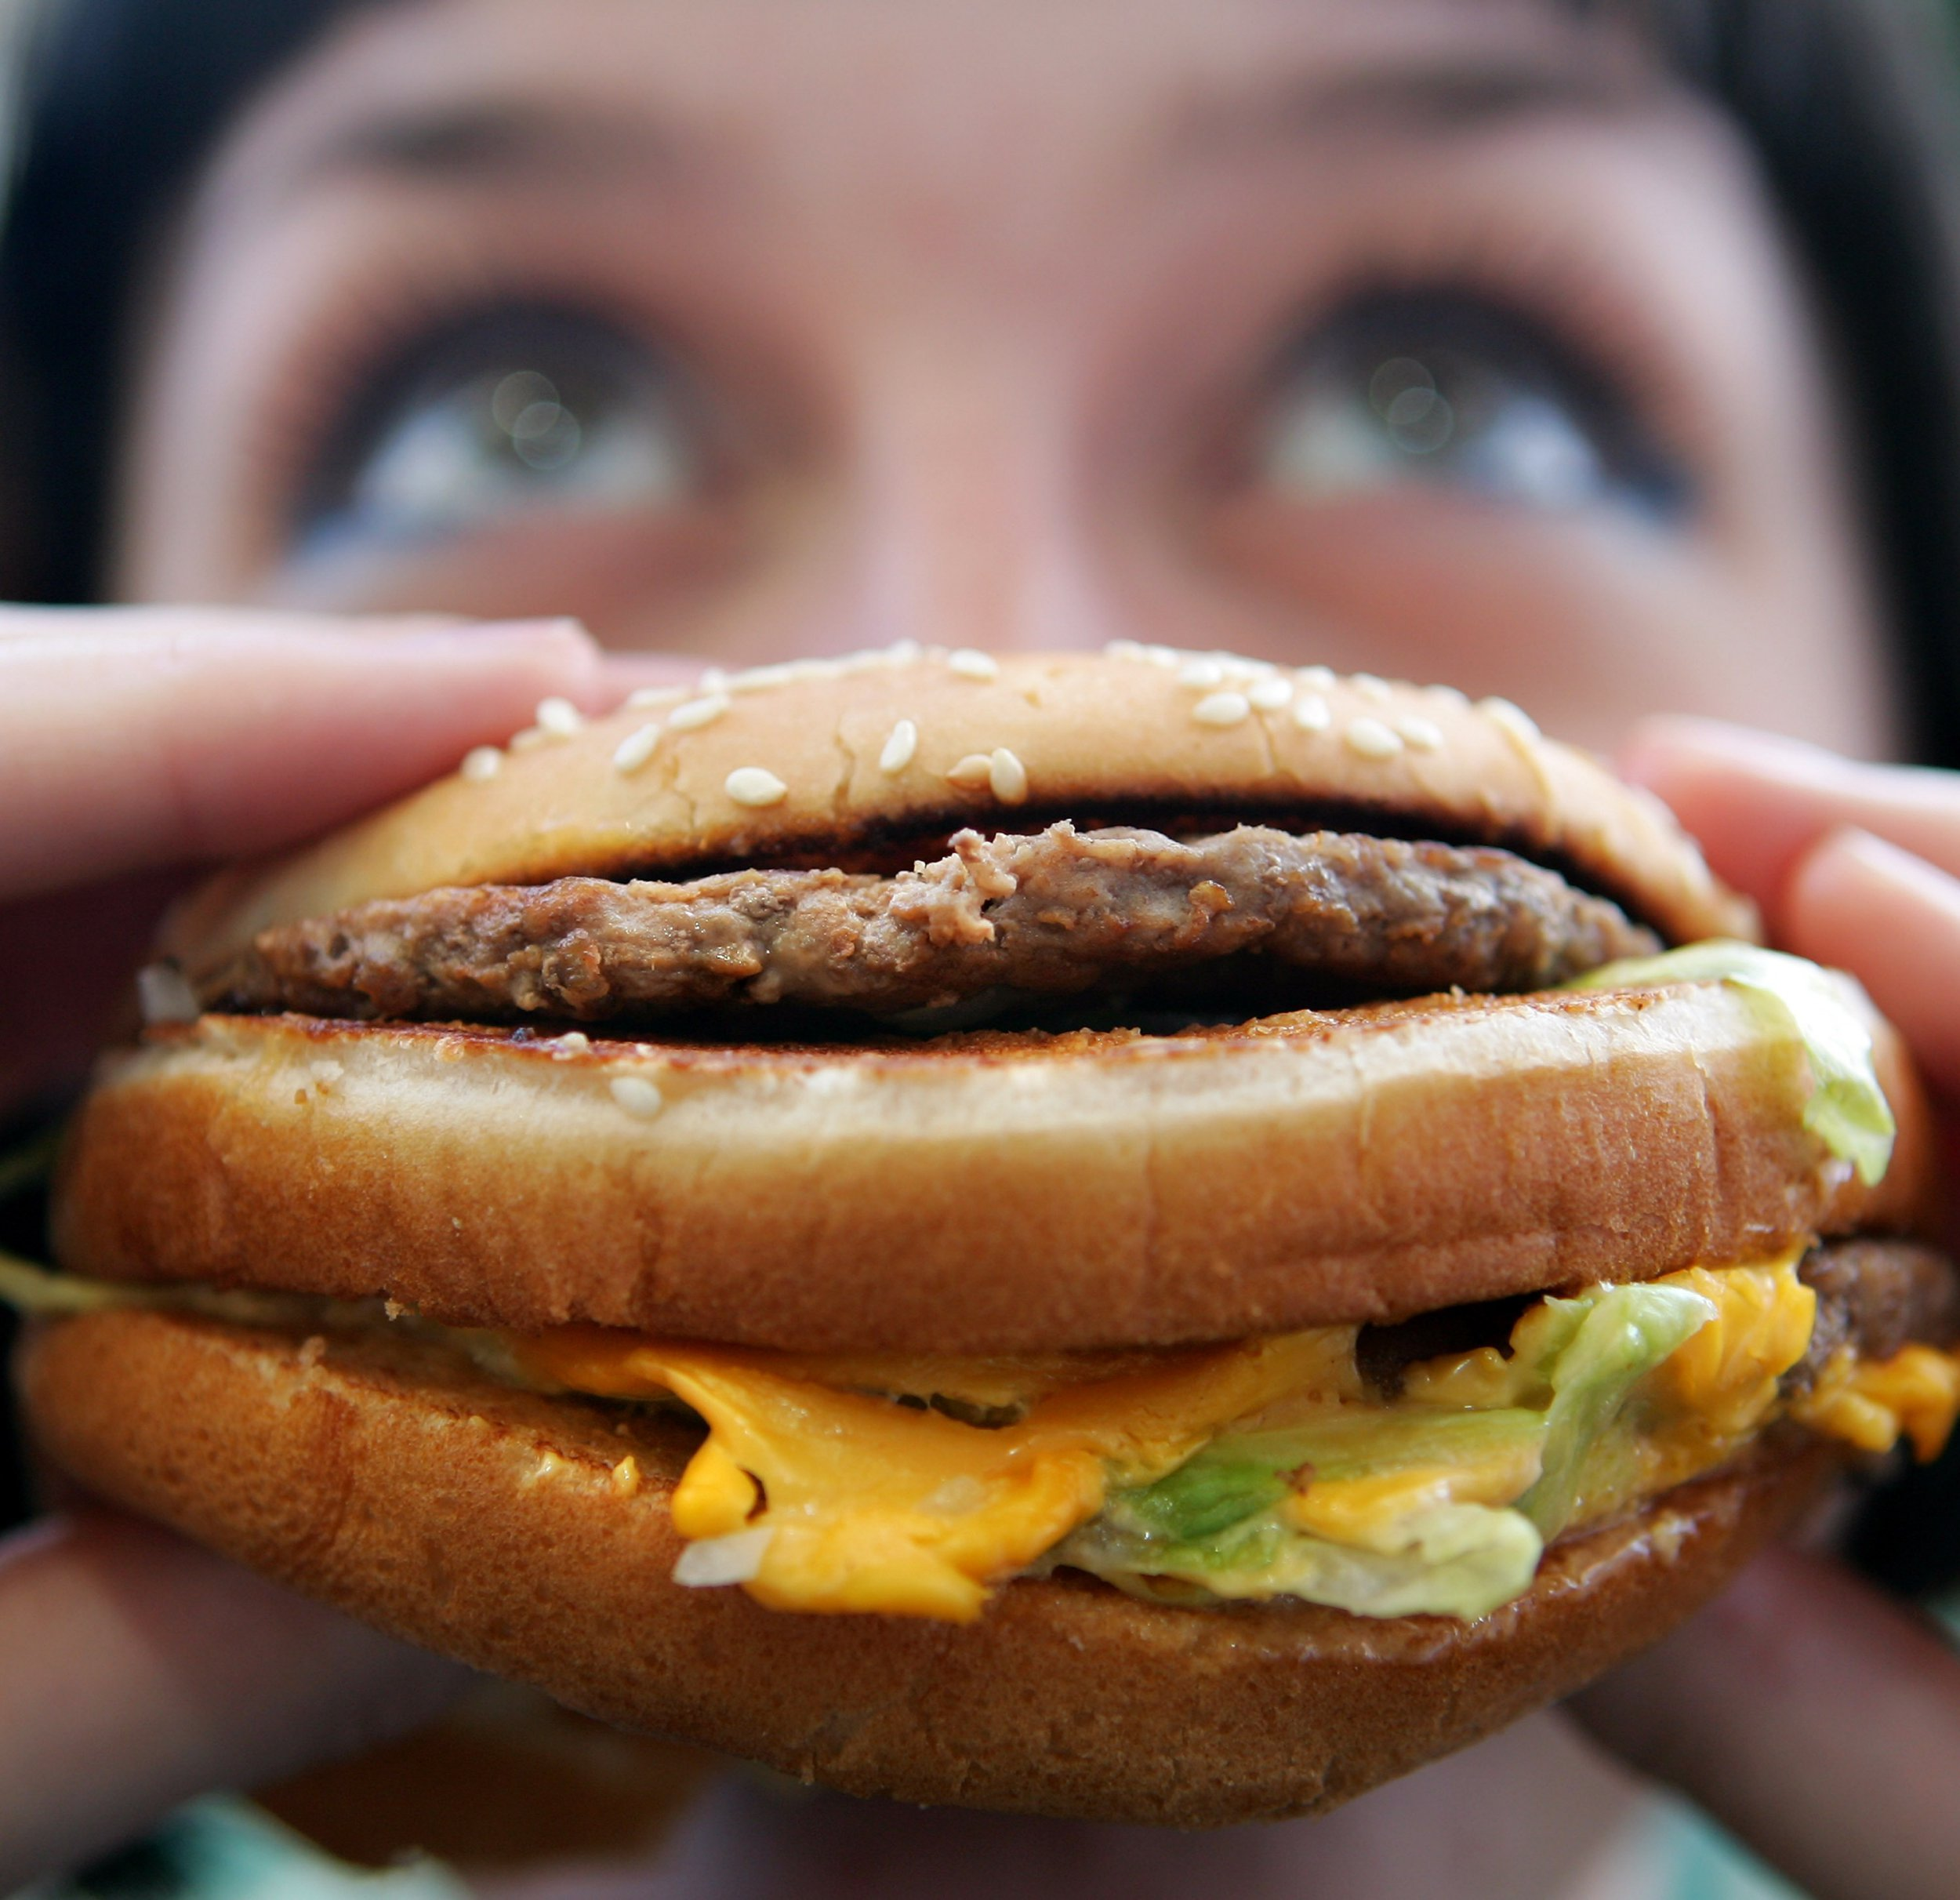 Poorest areas have the most fast food restaurants, figures show